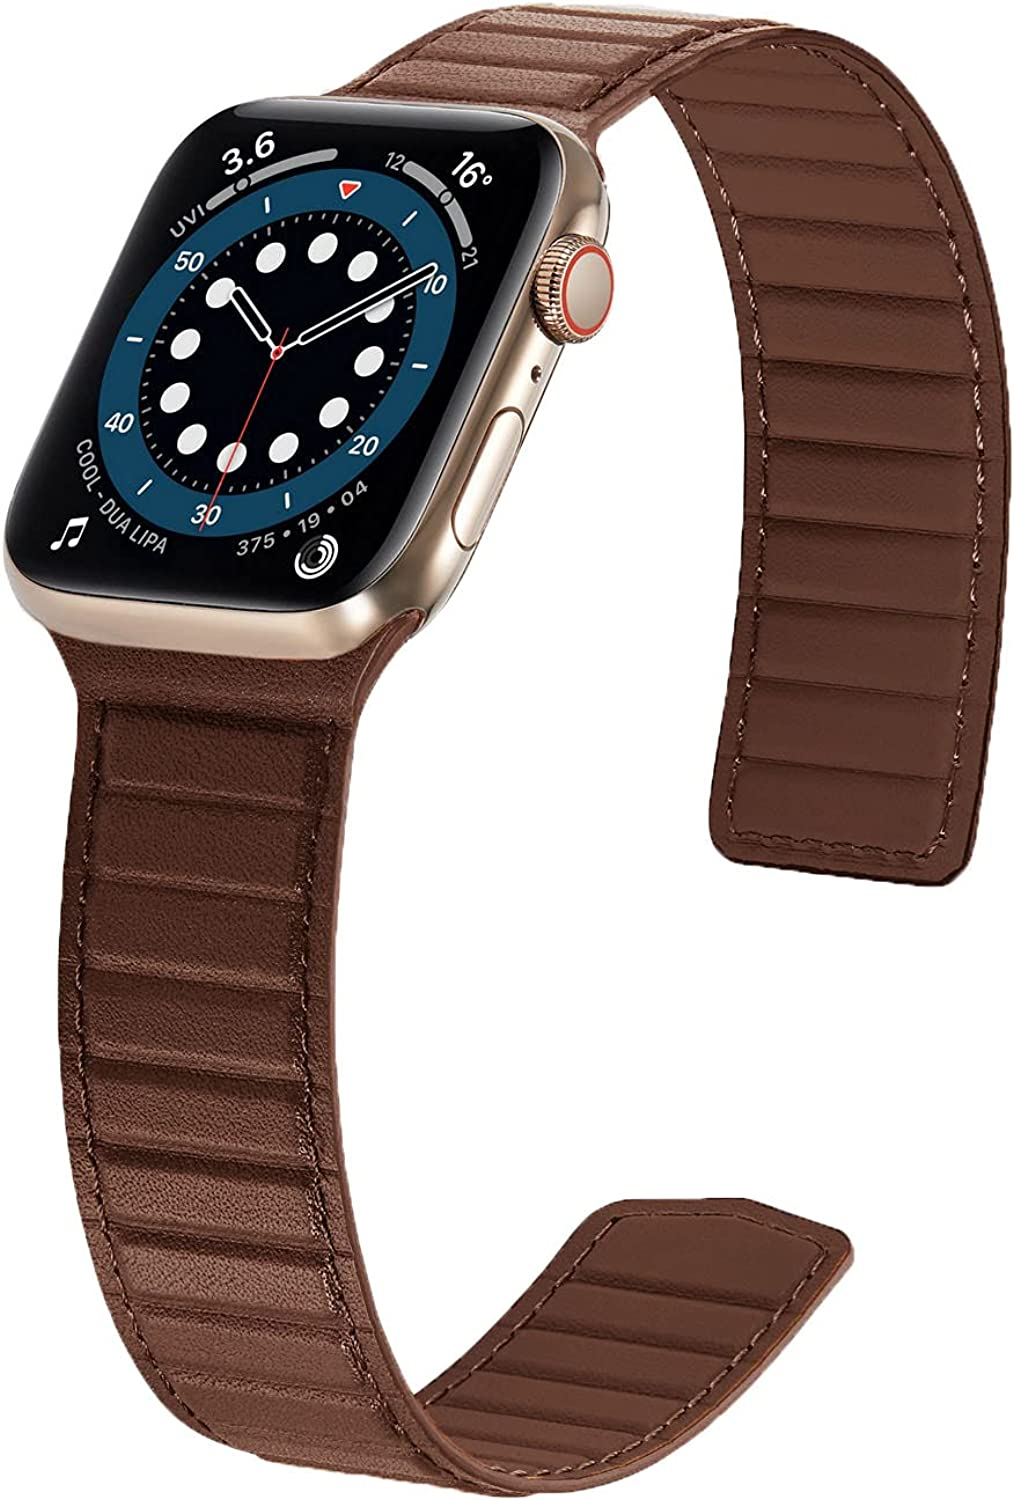 Magnetic Leather Bands Compatible with Apple Watch Band 45mm 44mm 42mm 41mm 40mm 38mm, Thin Leather Link Loop Replacement Wristband with Strong Magnet for iWatch SE & Series 7/6/5/4/3/2/1 Men Women